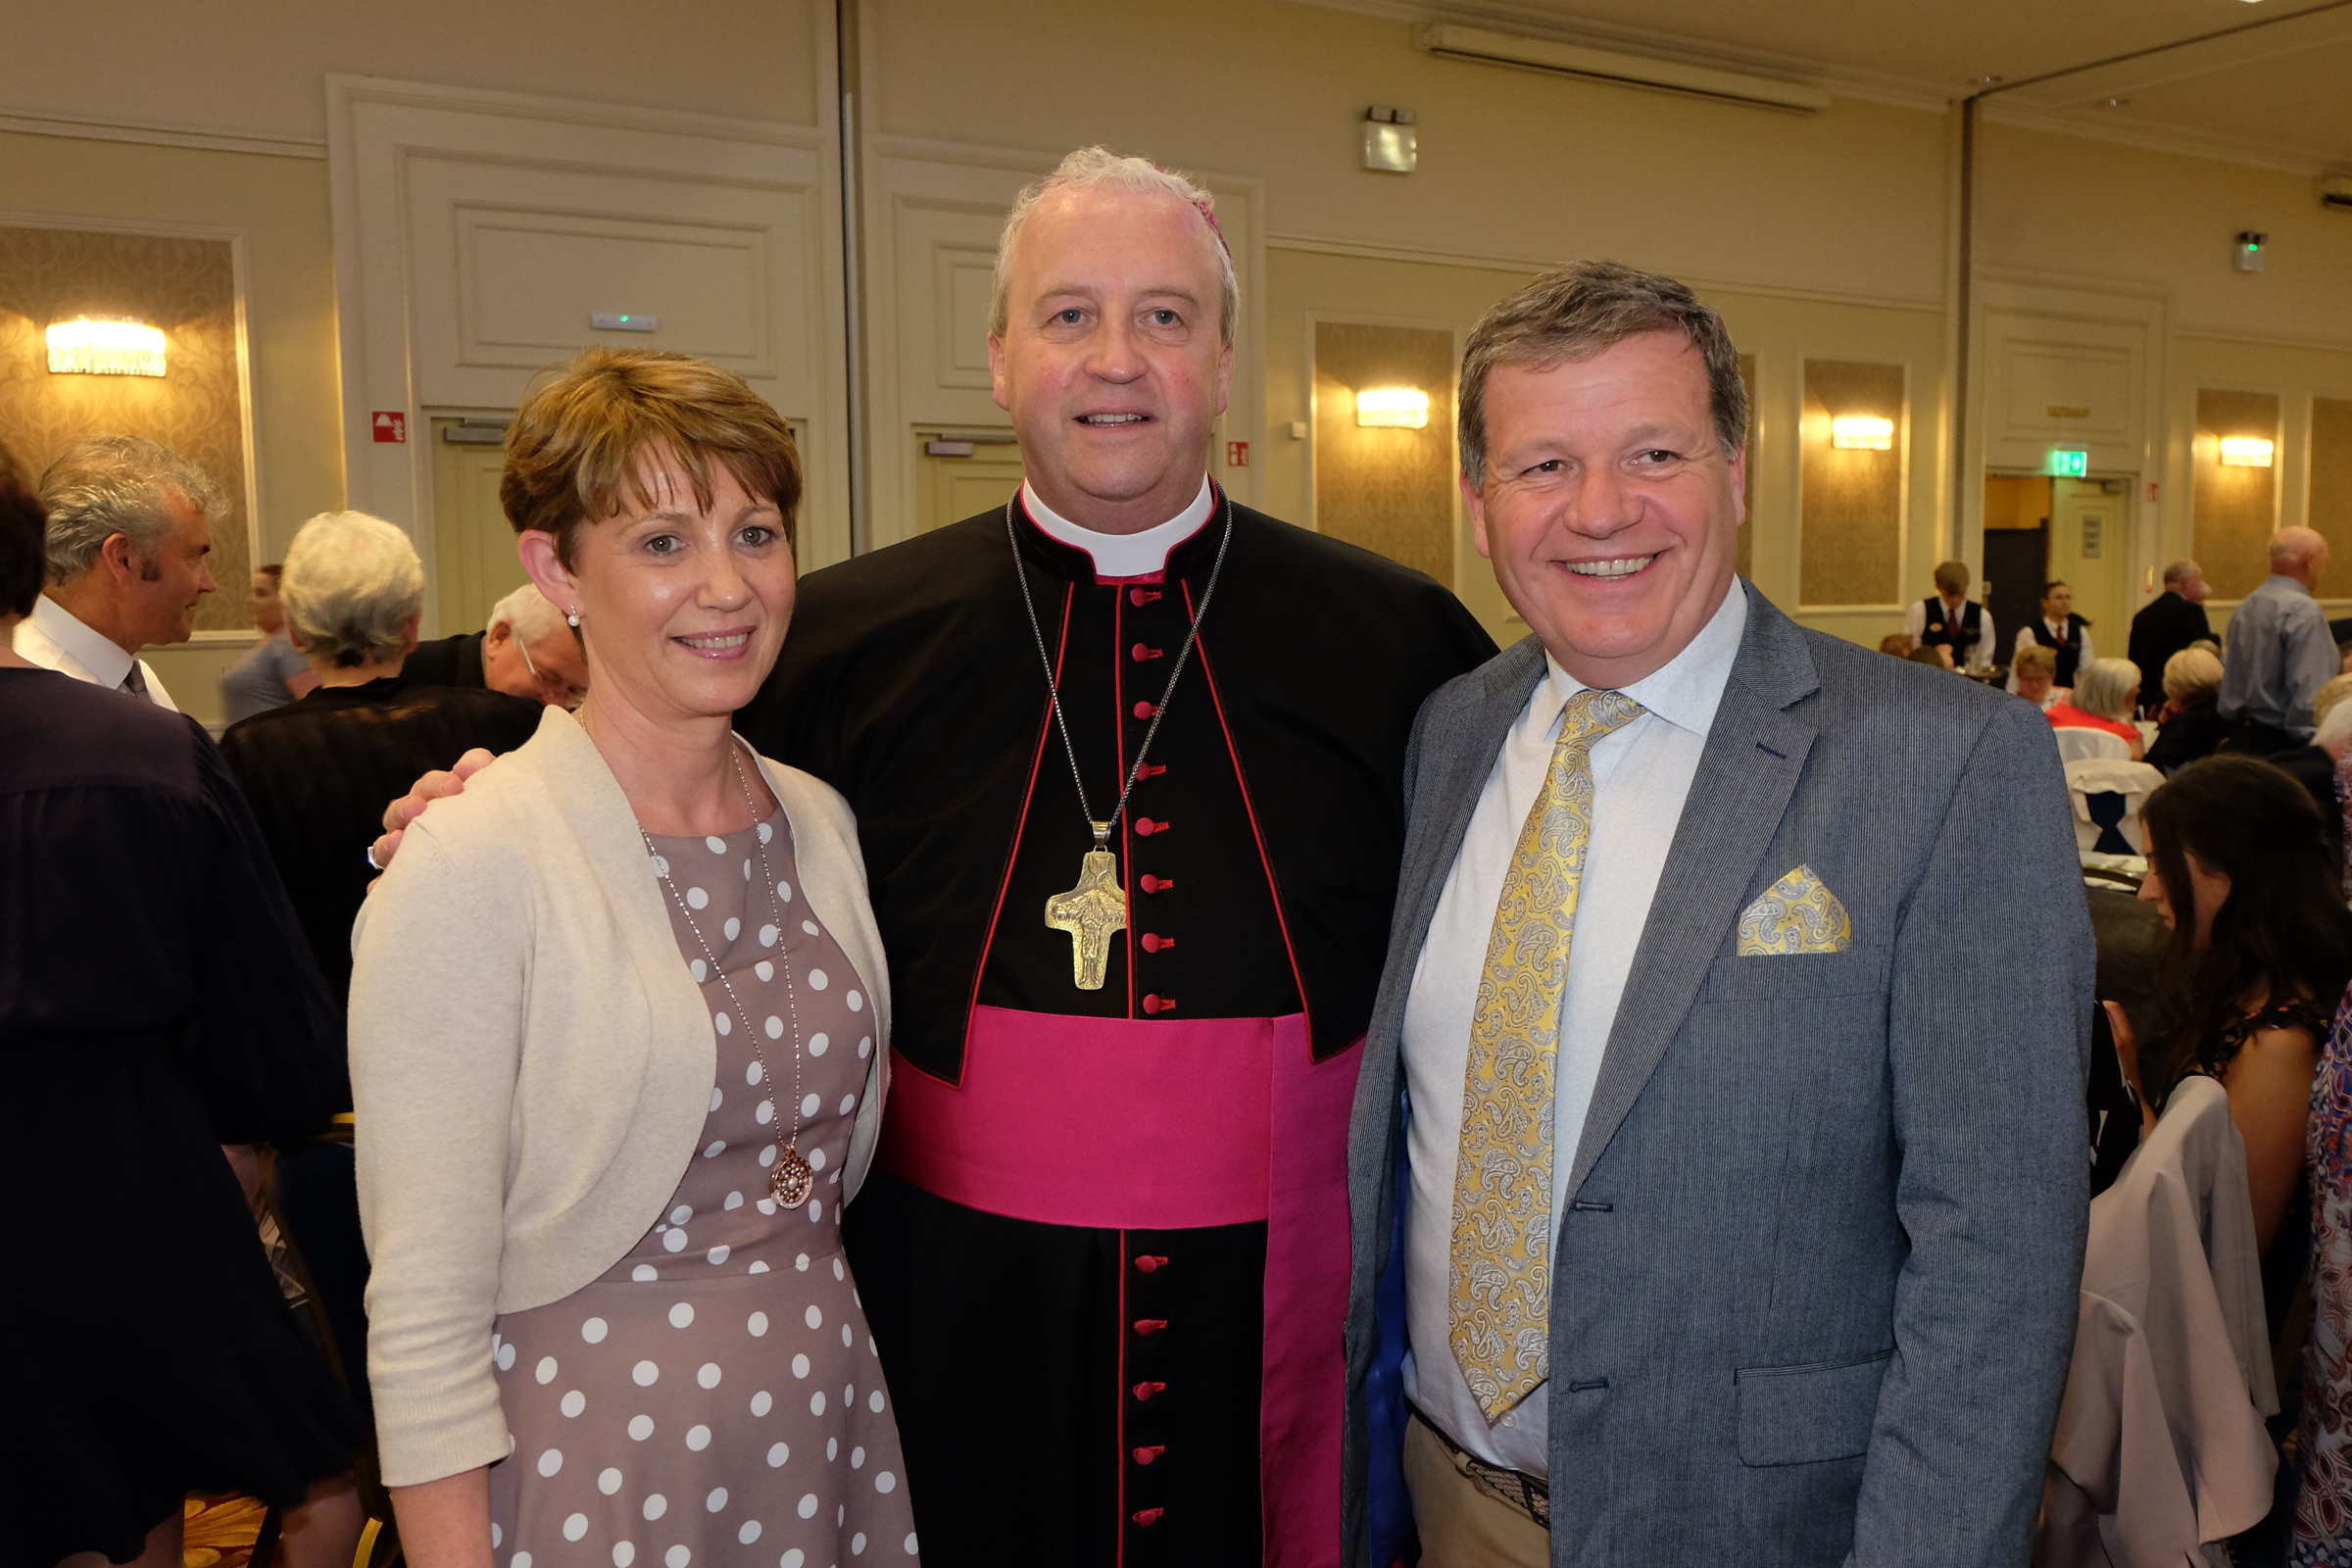 Siobhan and Patrick Farrelly with the new Bishop Michael Router at a celebration dinner following the Bishop's Ordination